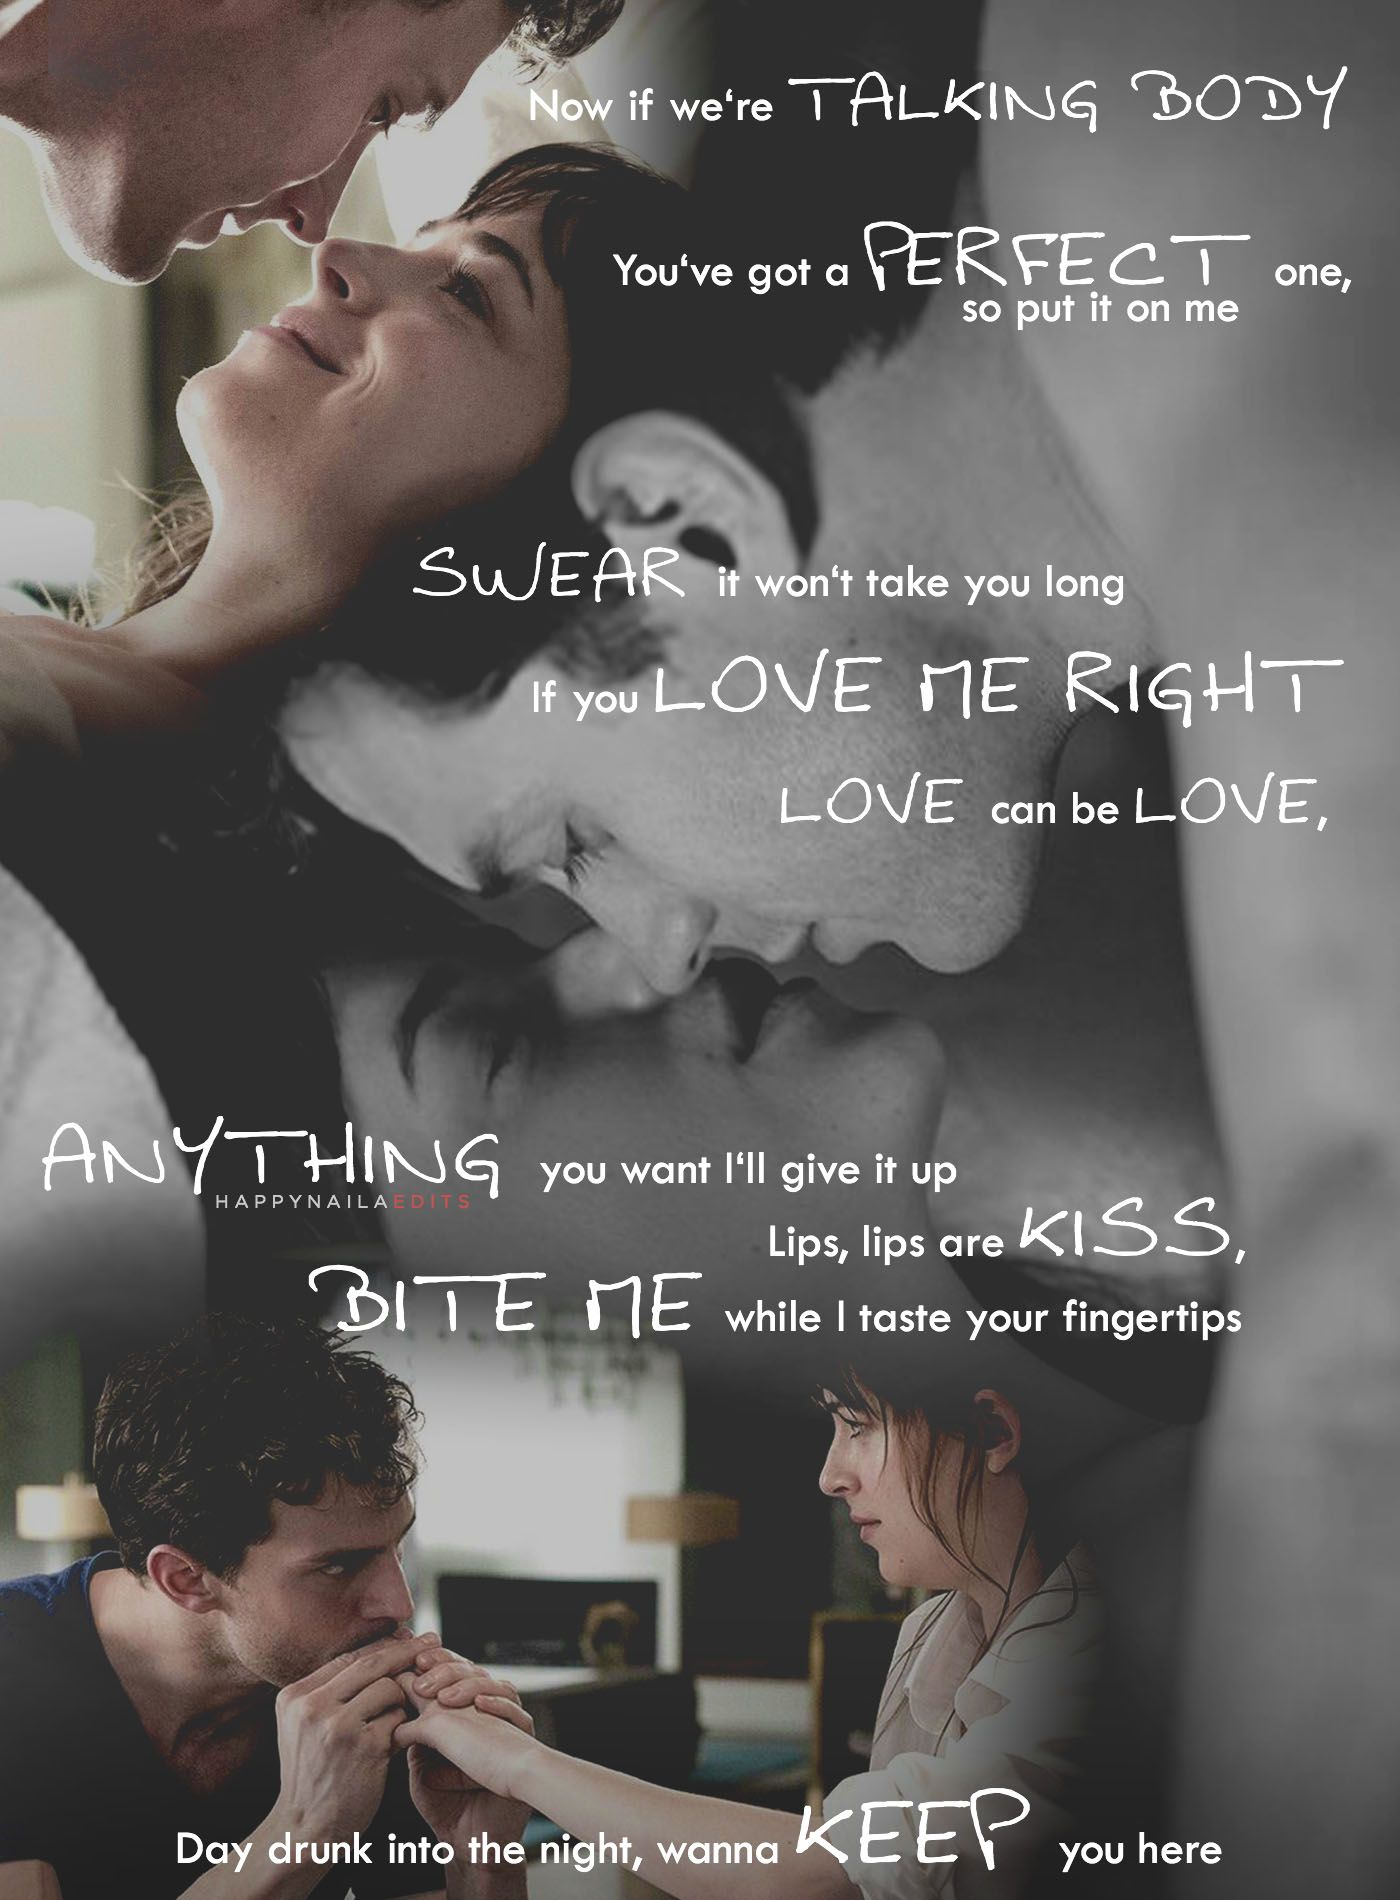 Talking body fiftyshades 50 shades trilogy fifty shades series fifty shades movie